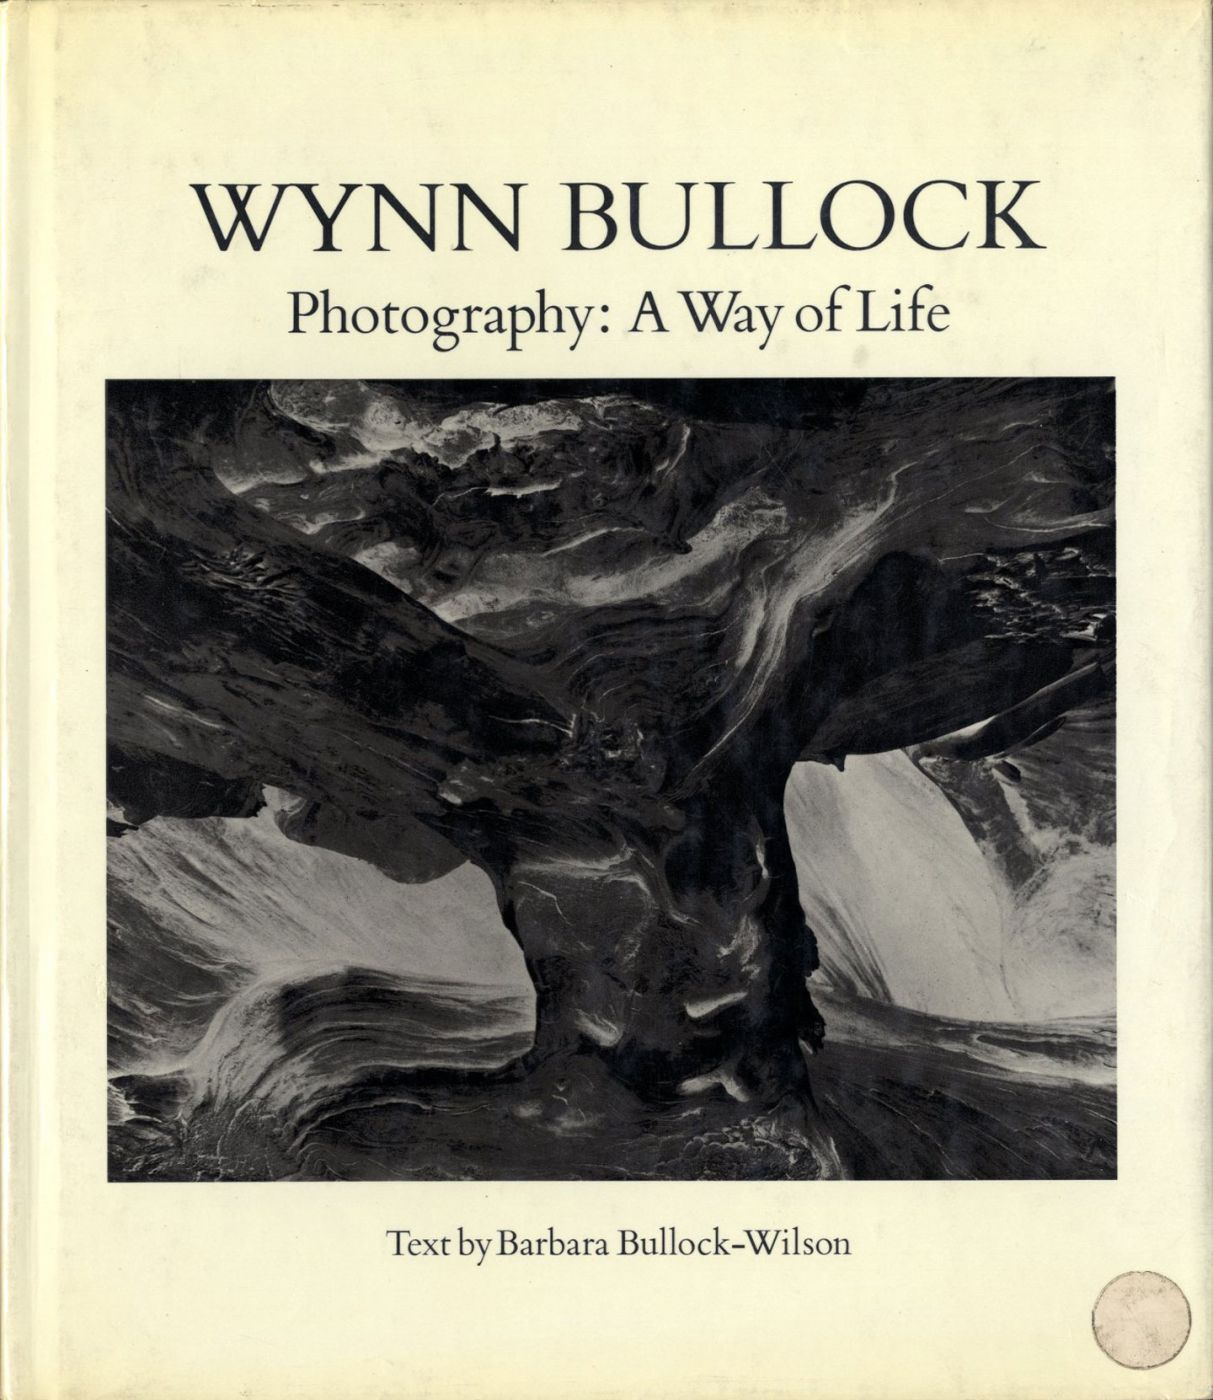 Wynn Bullock - Photography: A Way of Life